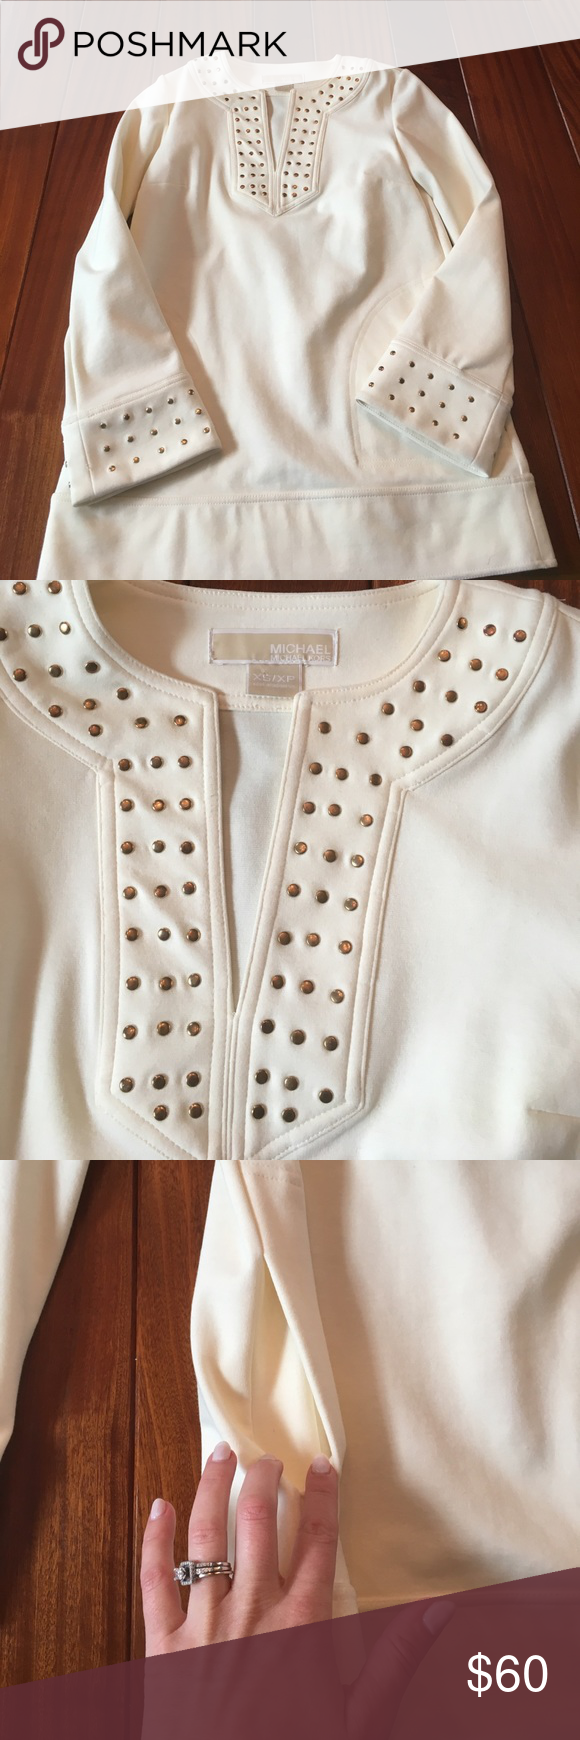 Michael Kors tunic BNWOT Michael Kors cream with gold hardware tunic. Has pockets and bell sleeves with gold hardware repeated like v-neckline Michael Kors Tops Tunics